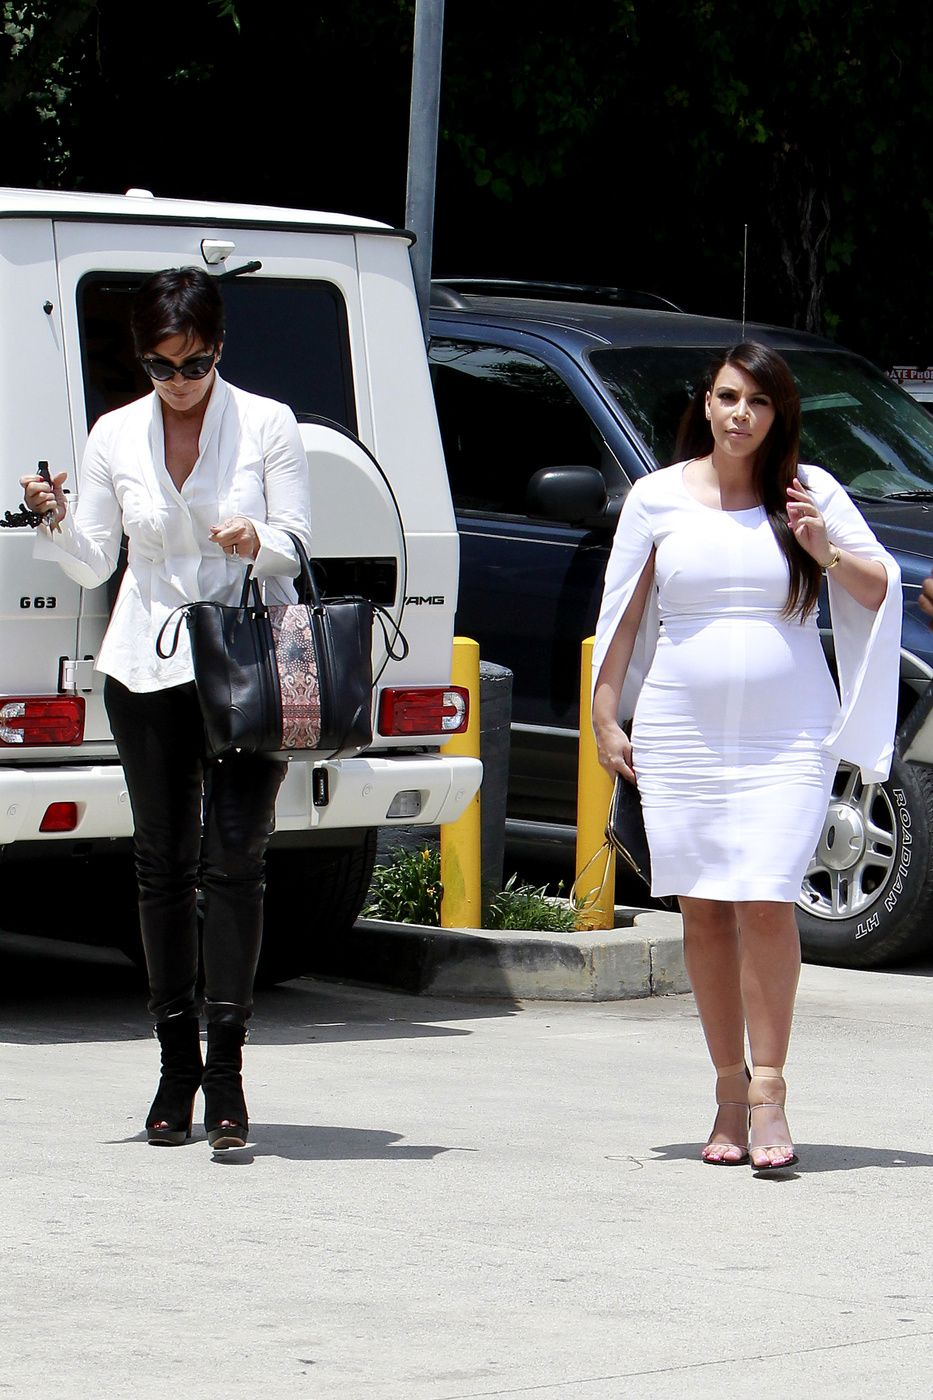 kris jenner and kim kardashian are beefing up security at their